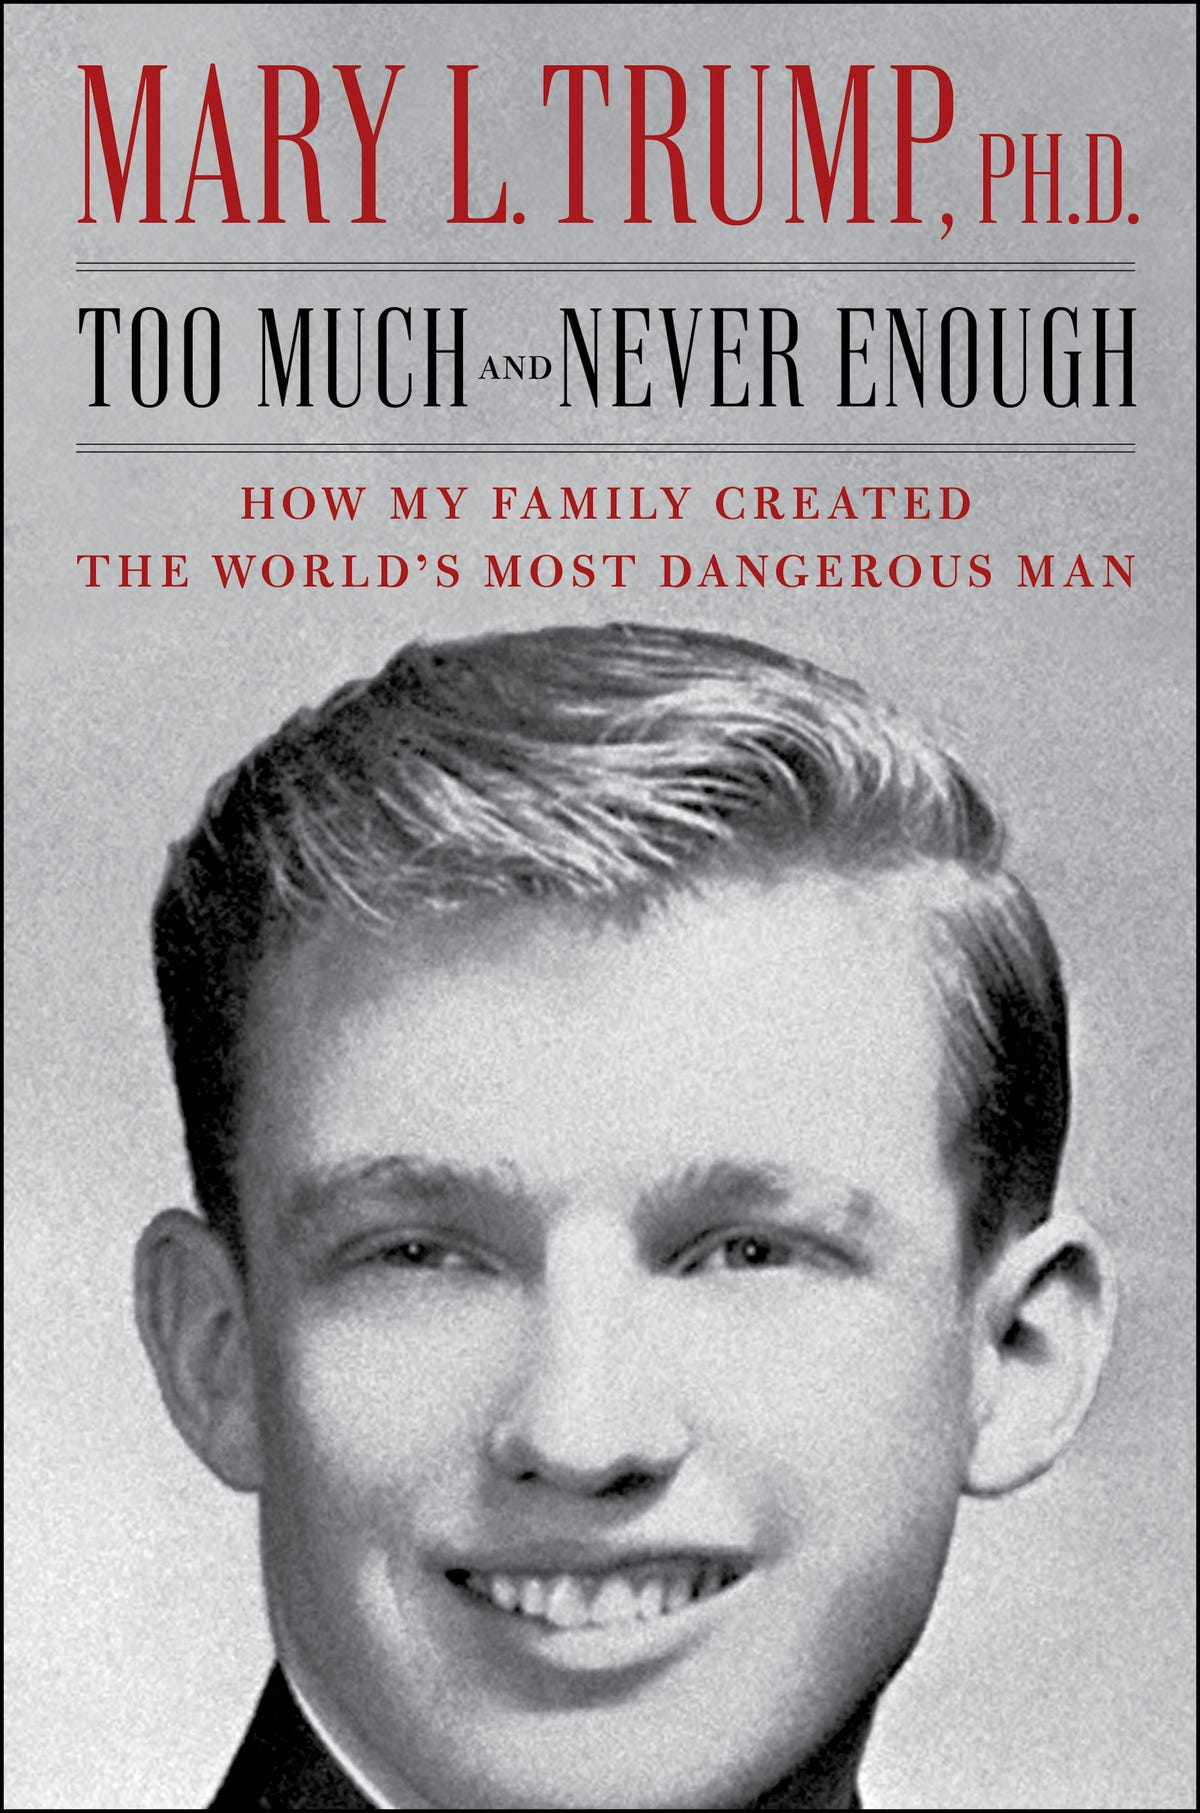 Cover of Mary Trump's book